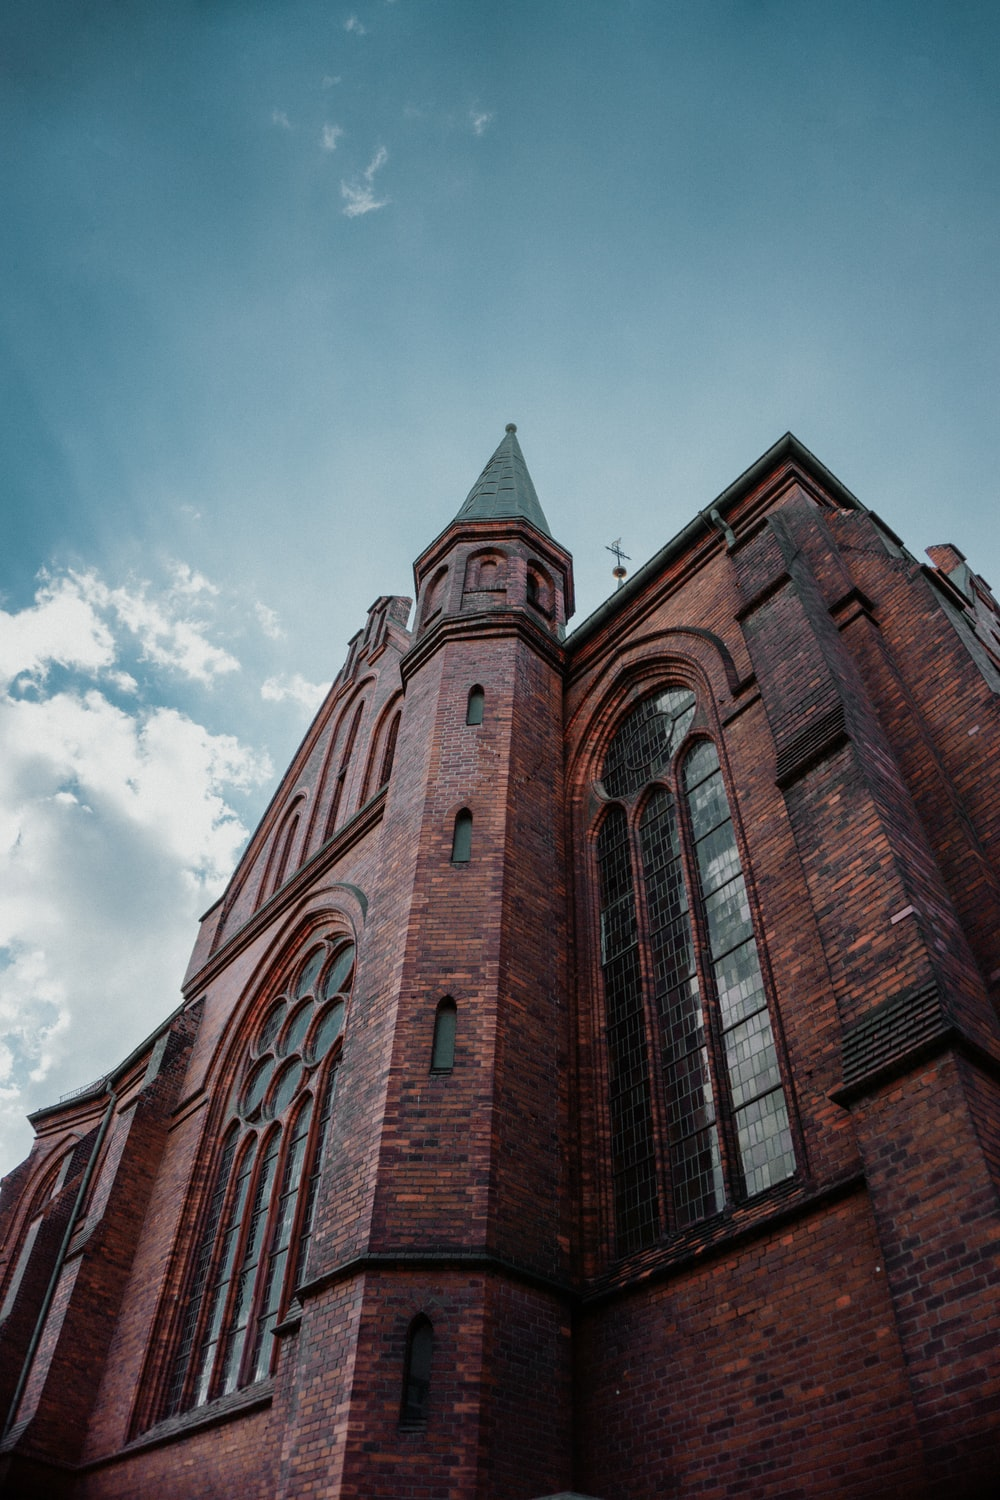 close-up photography of church during daytime